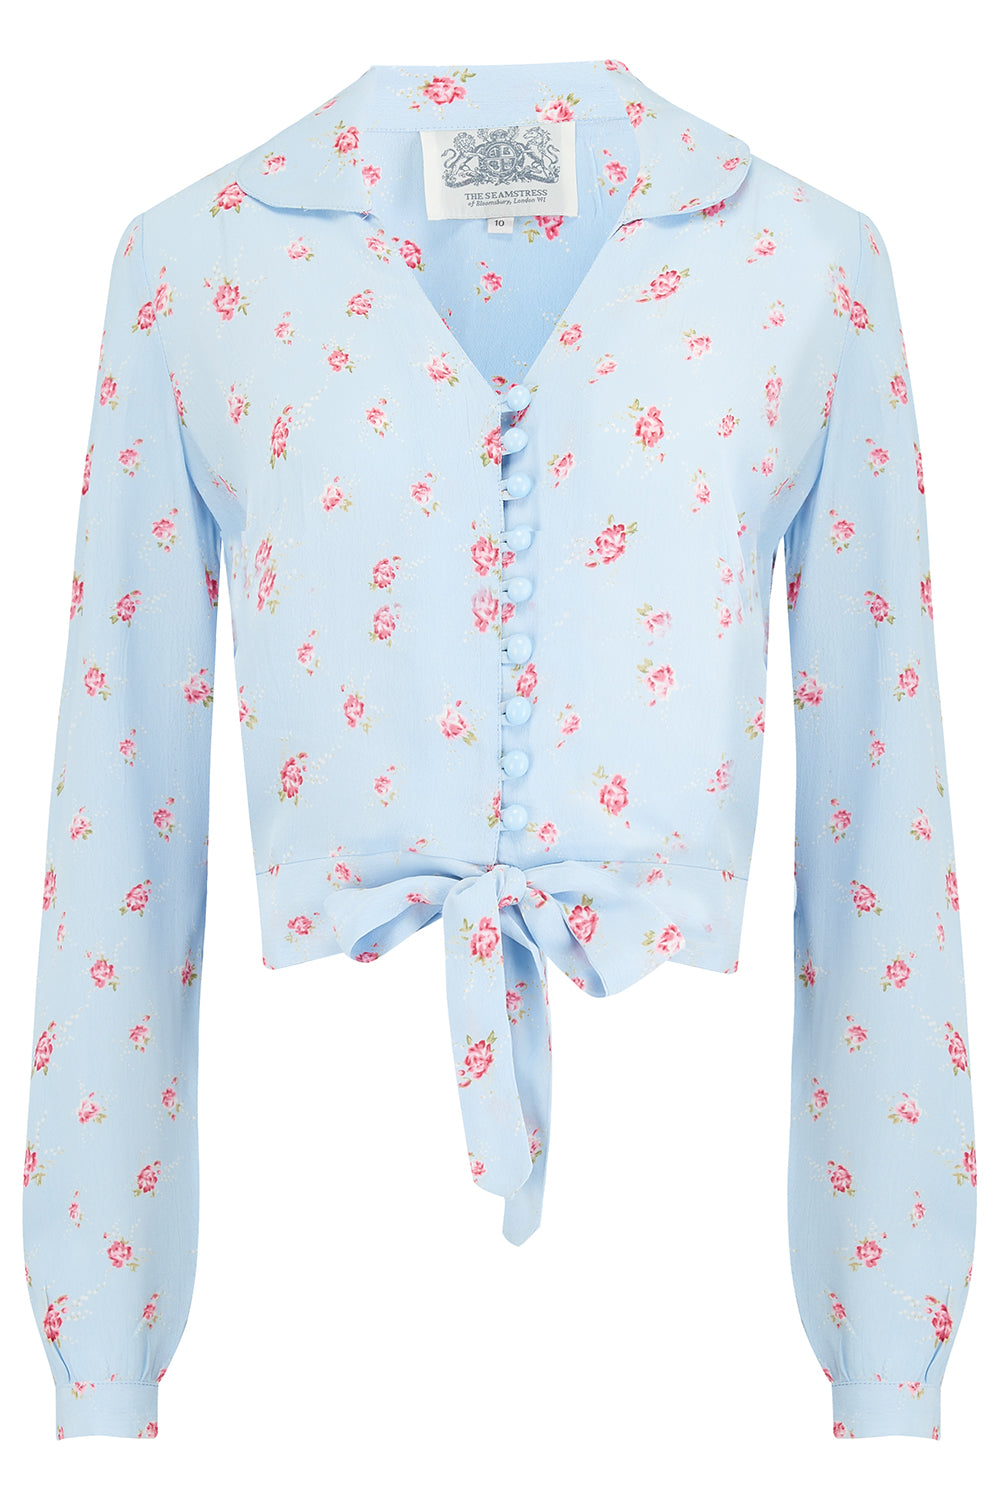 "The Seamstress Of Bloomsbury ""Clarice"" Blouse in Powder Blue Rose Print , Classic 1940s Vintage Inspired Style - RocknRomance Clothing"